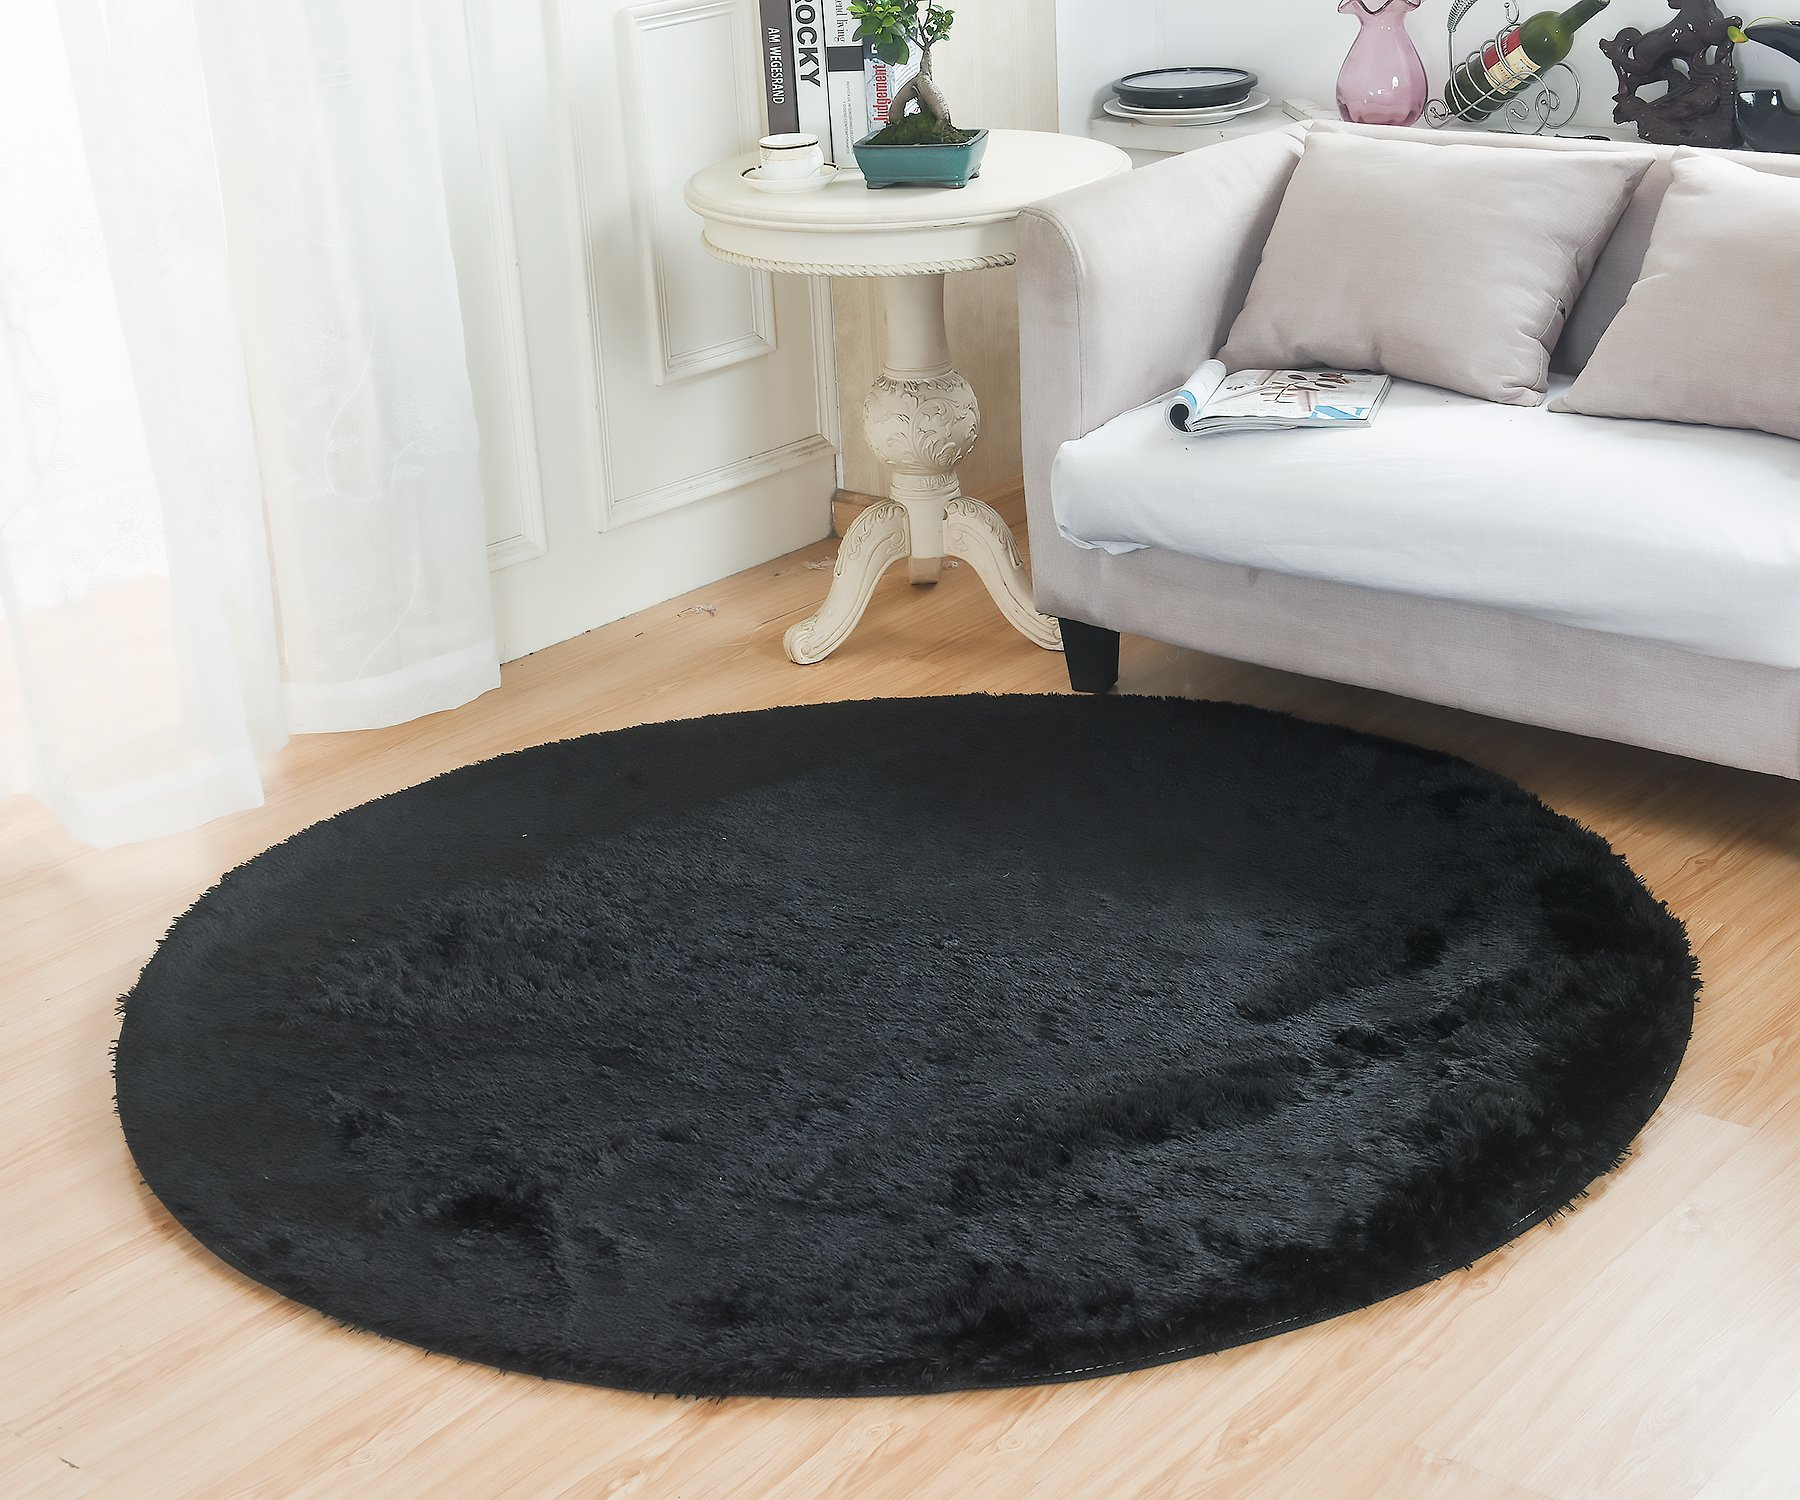 stores only area drizzle girls collection bag diy rug black under dark in decorators rugs walmart room christmas ideas contemporary home cheap blackwhite mainstays decor at